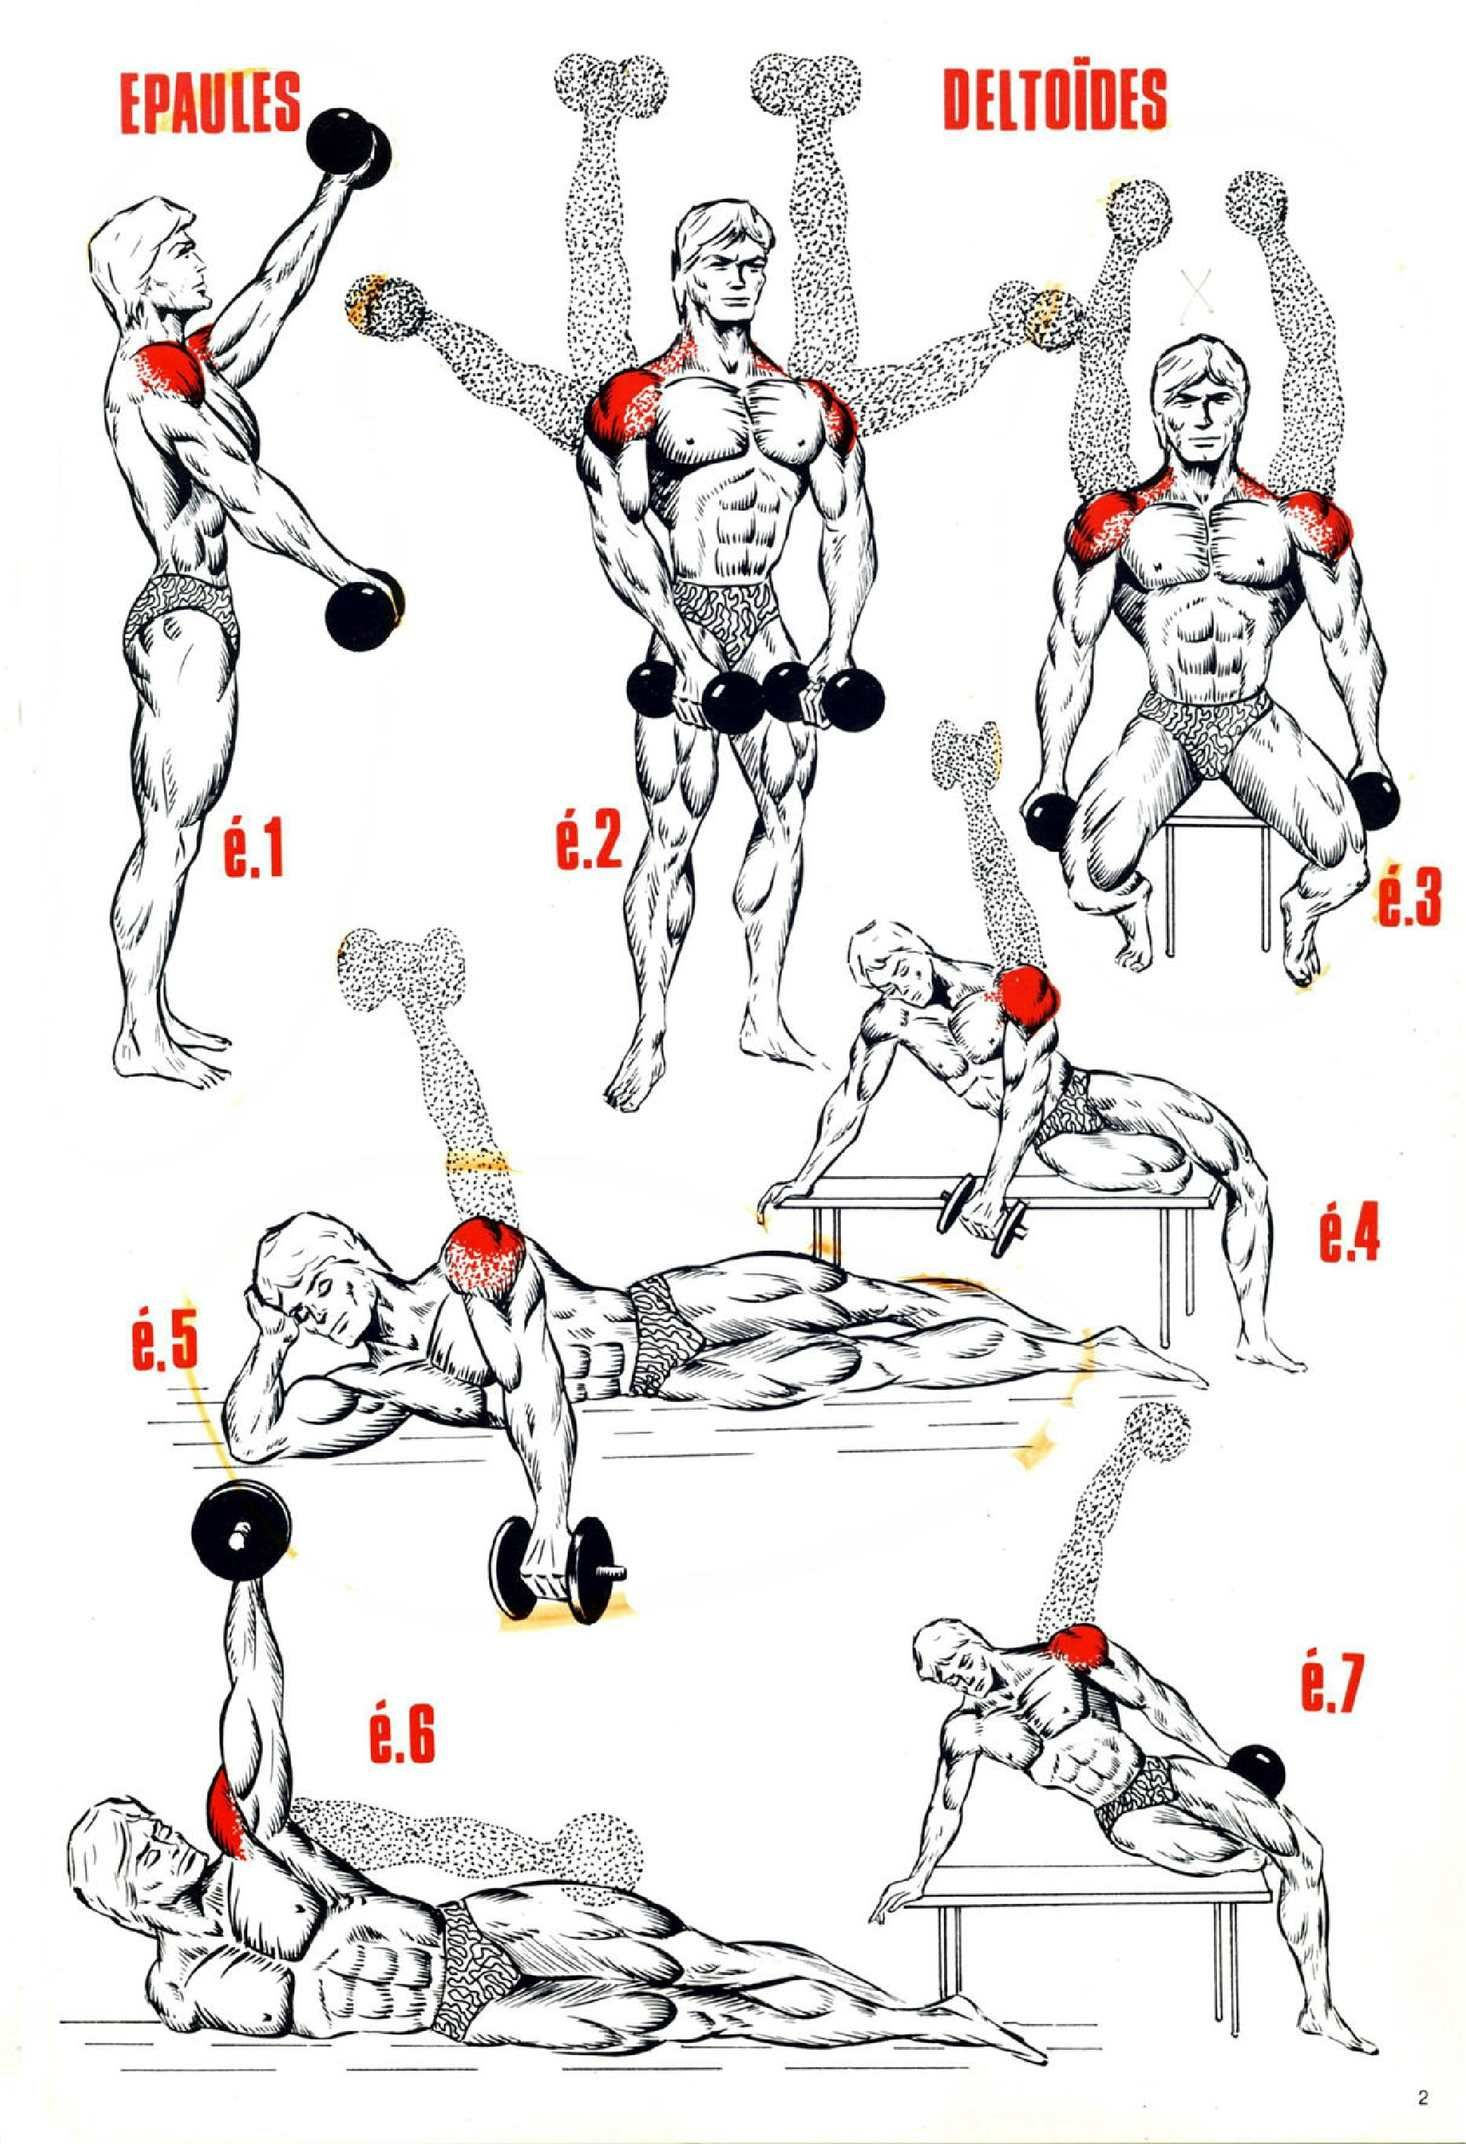 Exercice Musculation Pdf Programme Musculation Epaule Fitness Et Musculation Programme Musculation